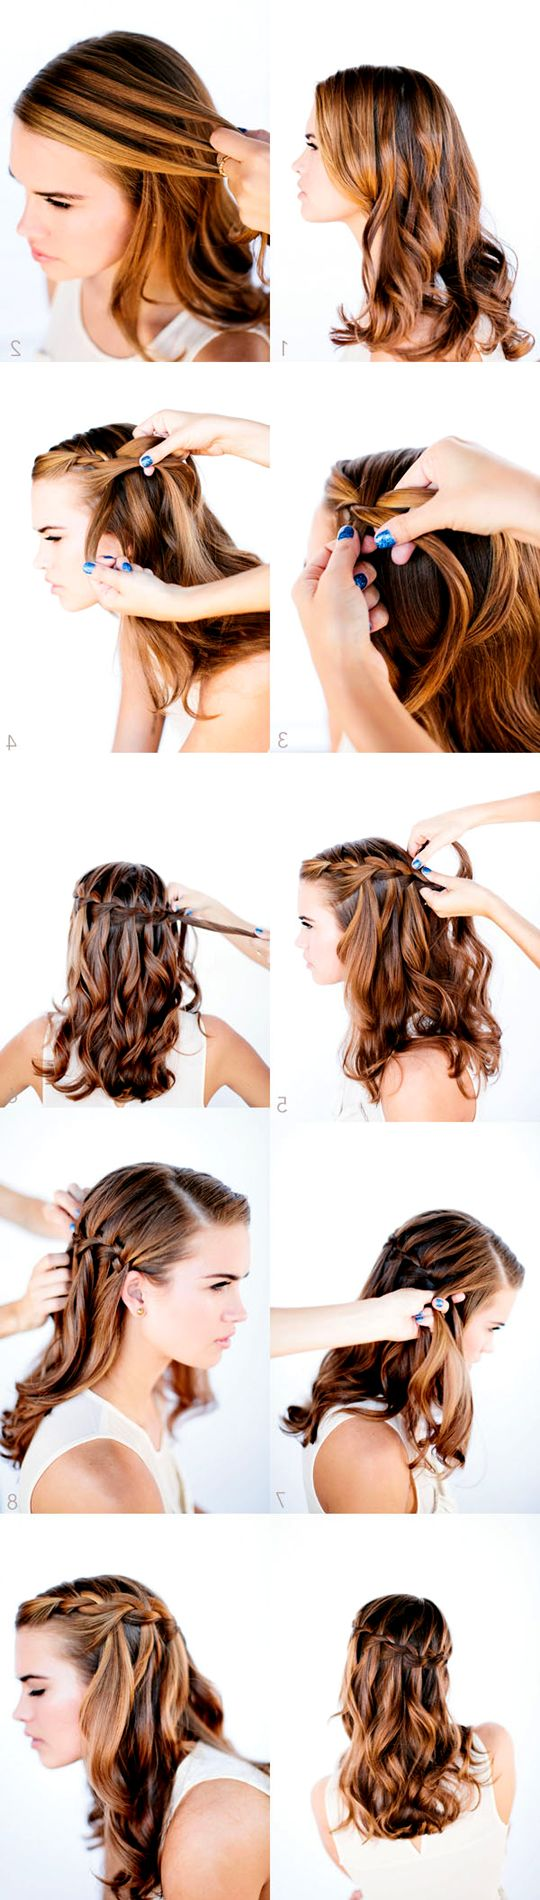 new wedding hairstyles step by step with pictures - http://ytnetwork ...